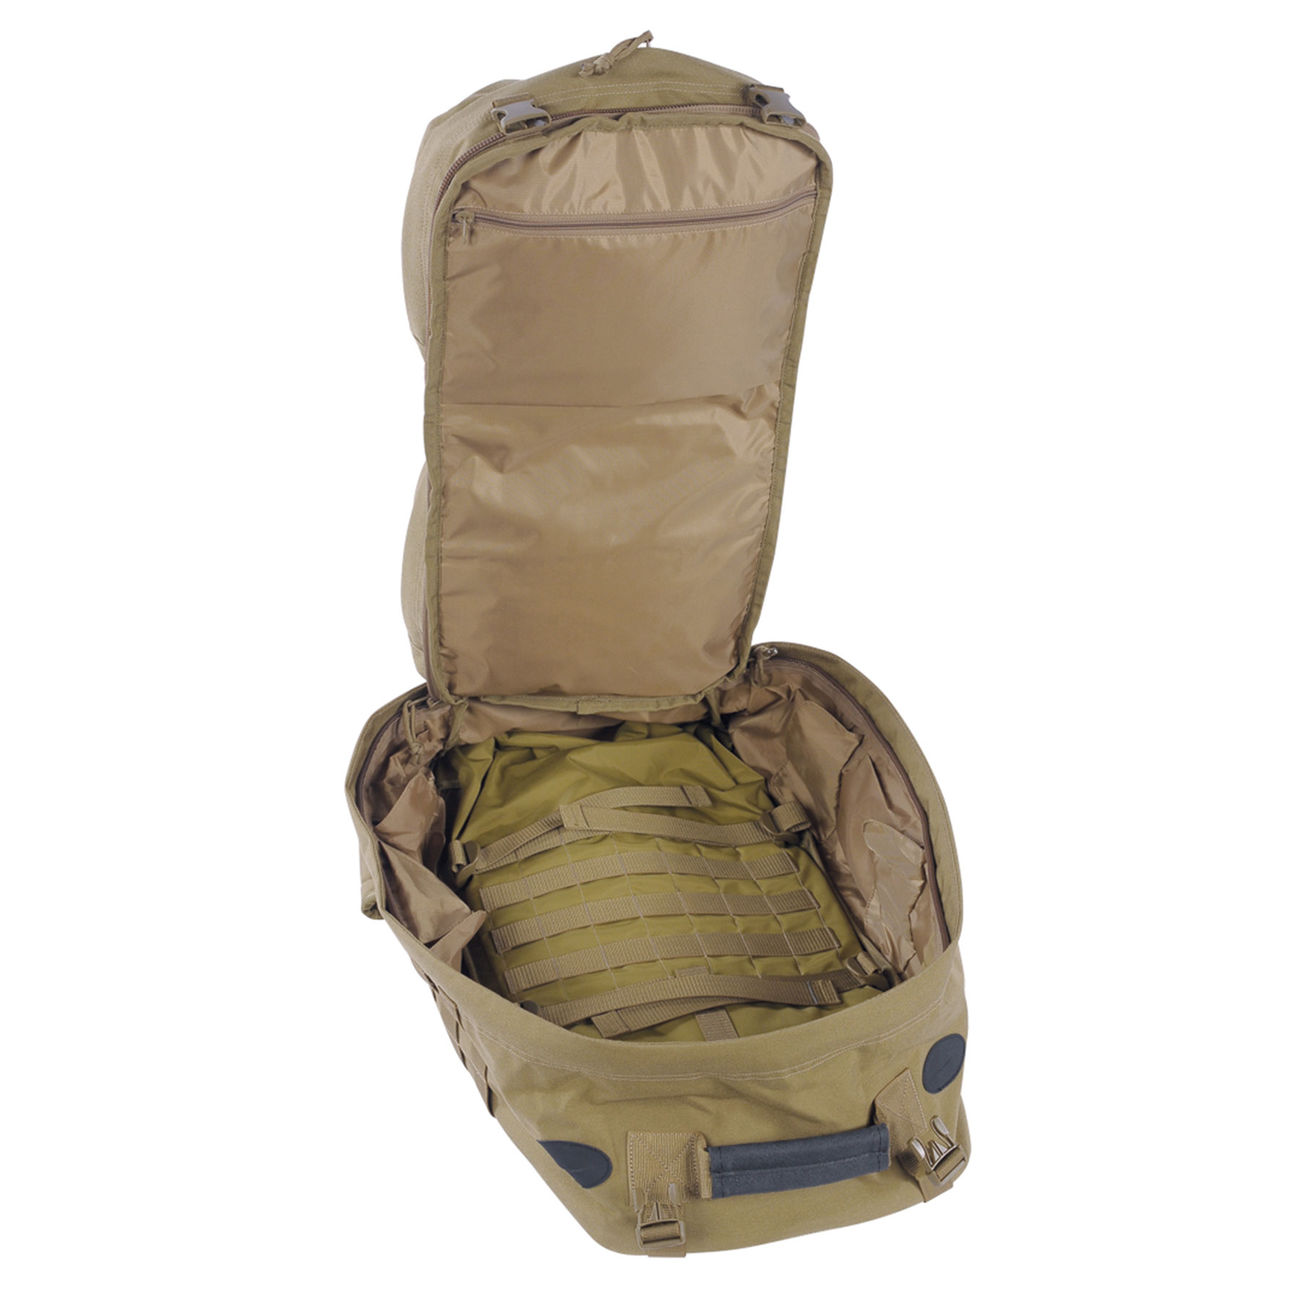 TT Rucksack Bug Out Pack khaki 3